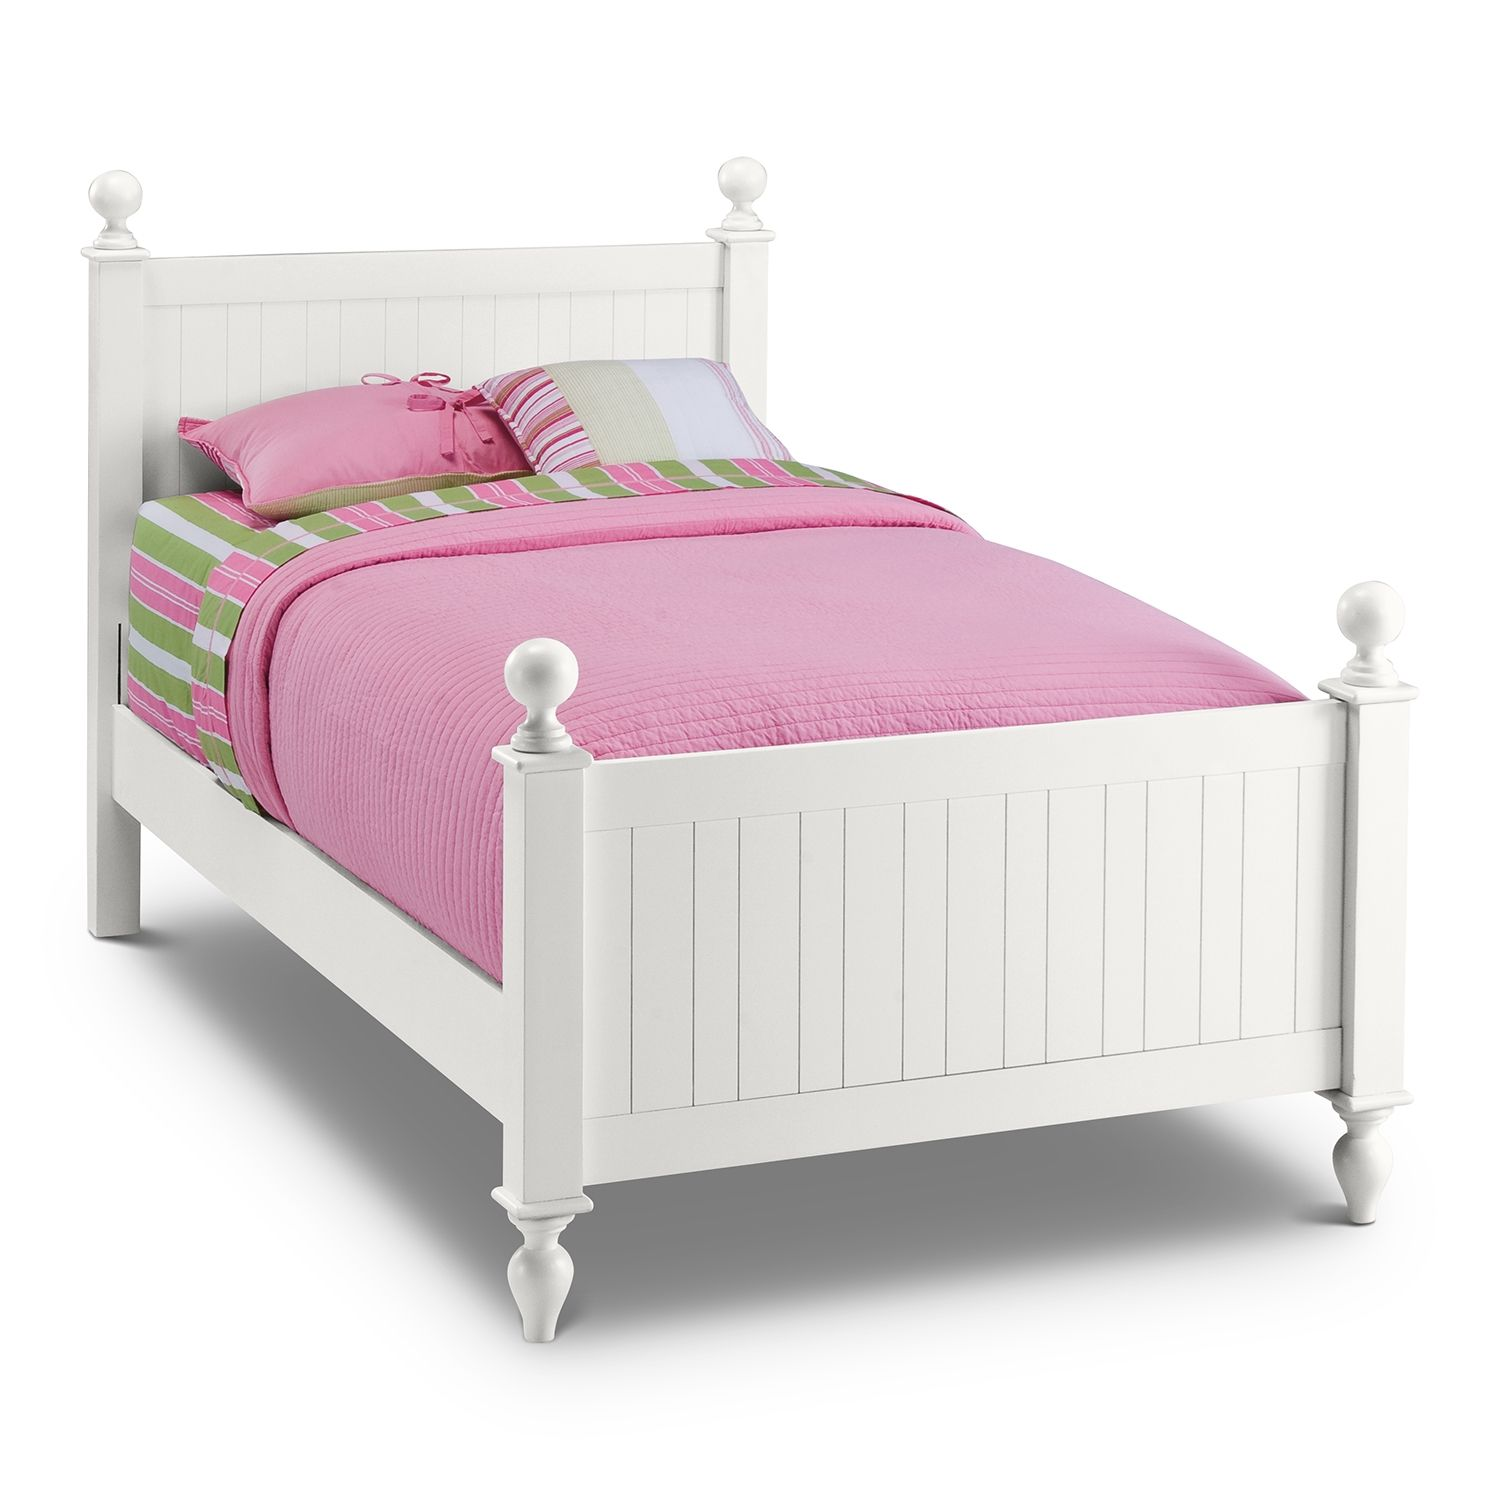 Awesome White Twin Bed For Your Kids Bedroom Headboards Pinterest Twin Beds Kids